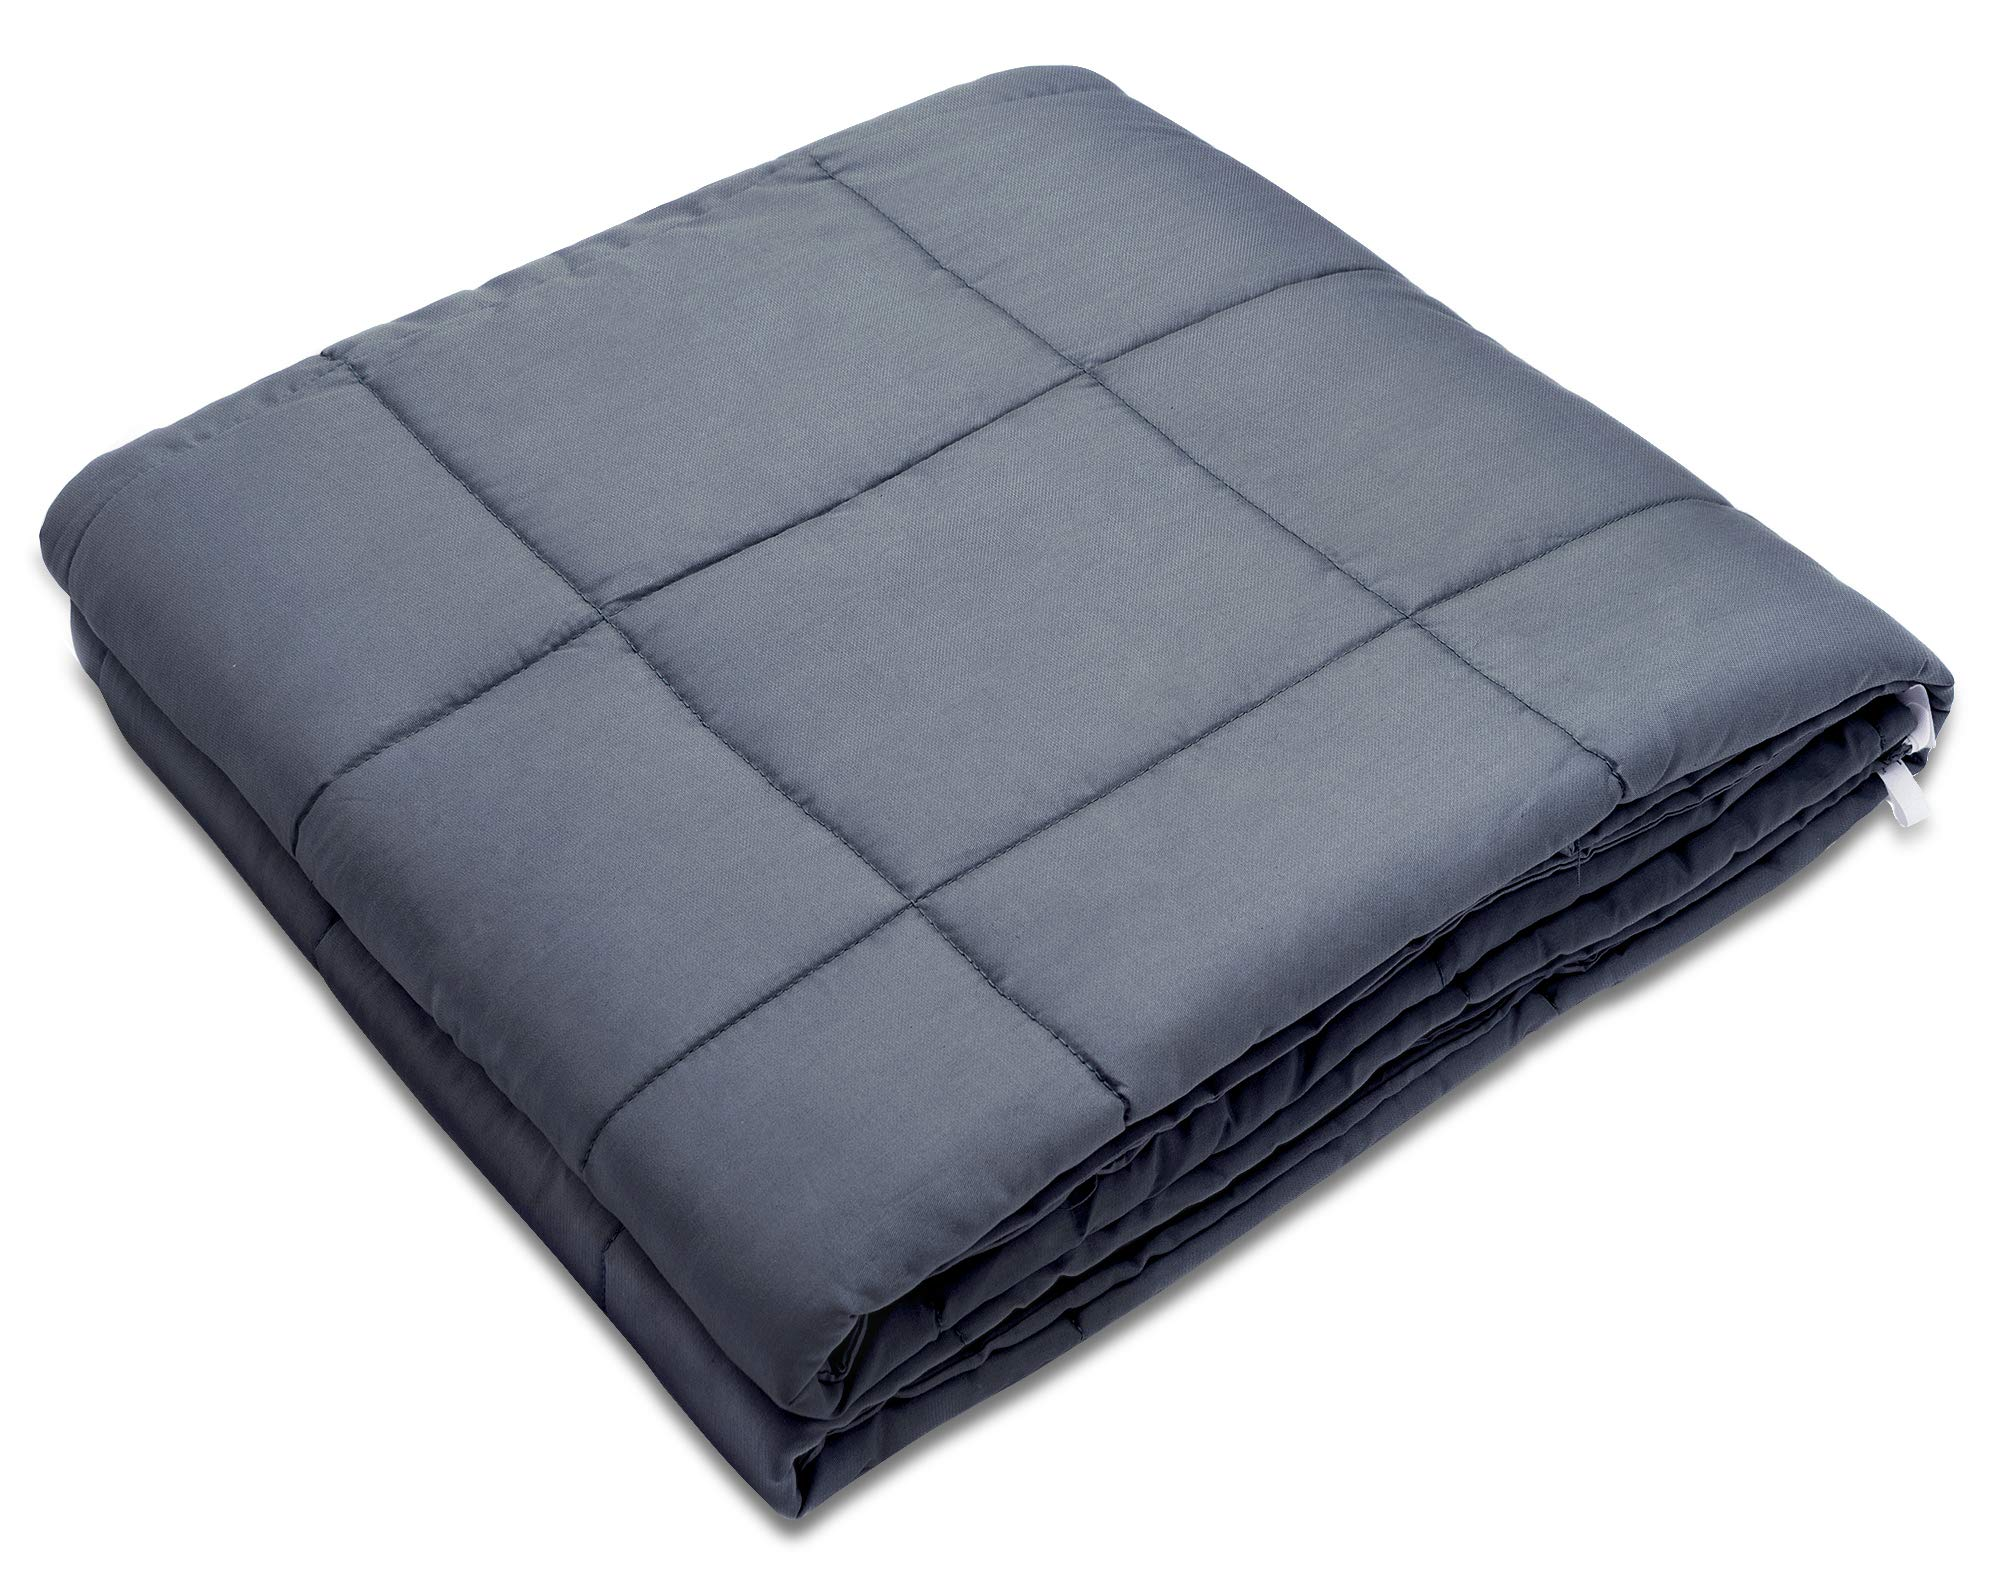 Amy Garden Weighted Blanket for Anxiety, ADHD, Autism, Insomnia or Stress - Premium Various Weighted Blankets for Great Sleep (48''x72'',15 lbs for 140-150 lbs Individual, Grey)